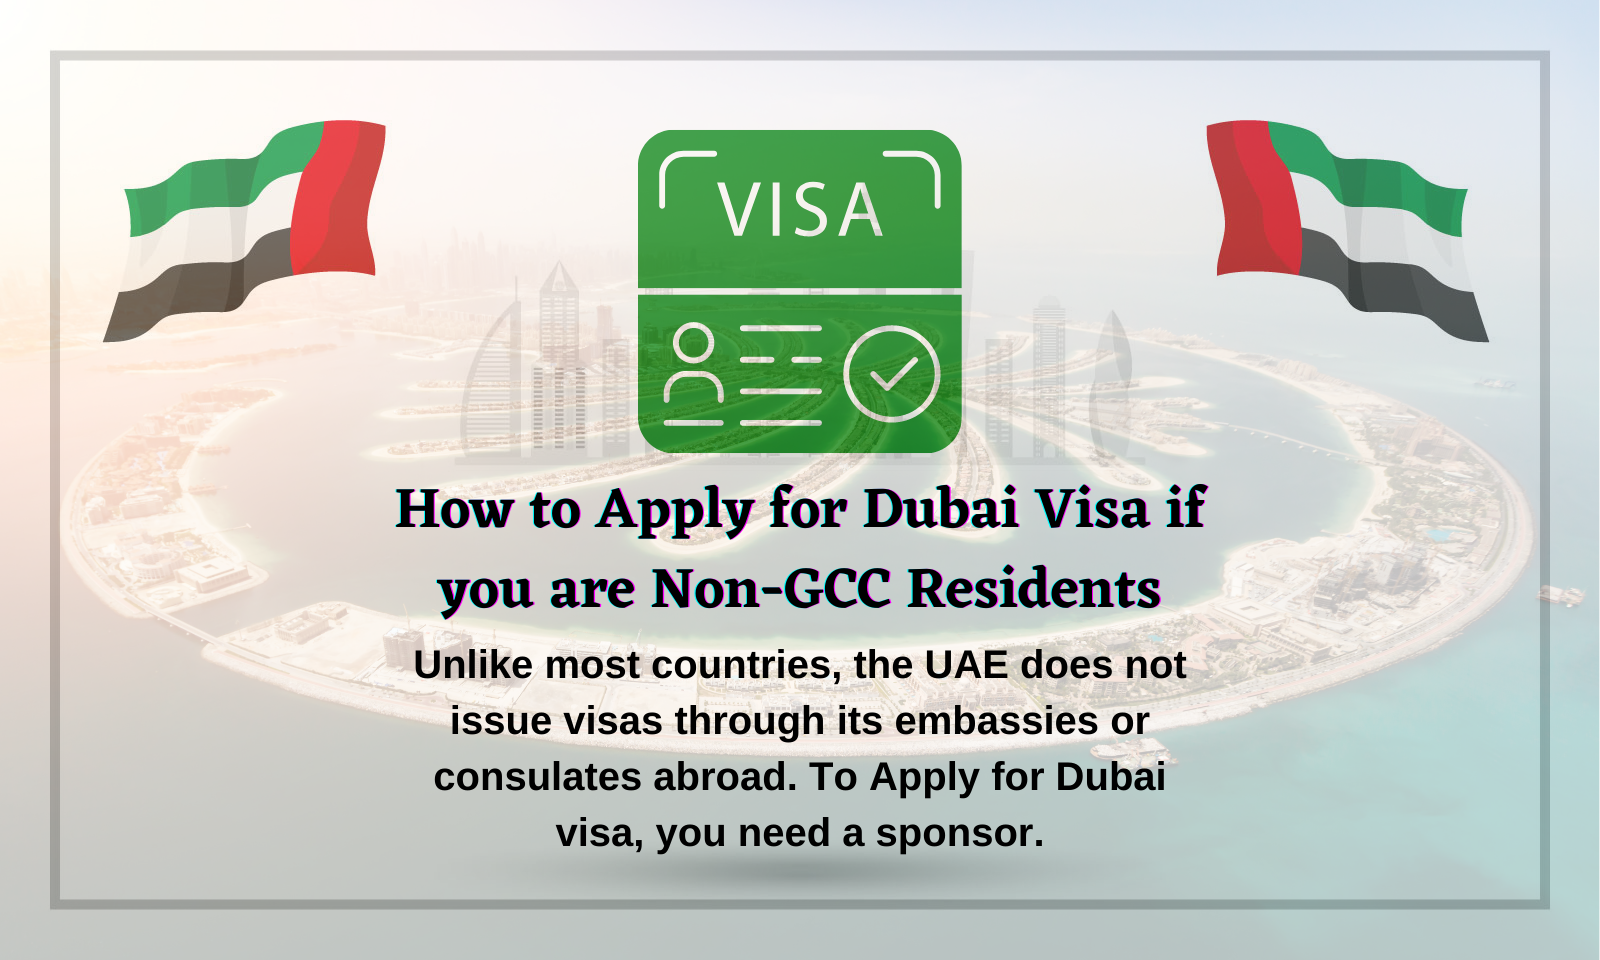 How to Apply for Dubai Visa if you are Non-GCC Residents